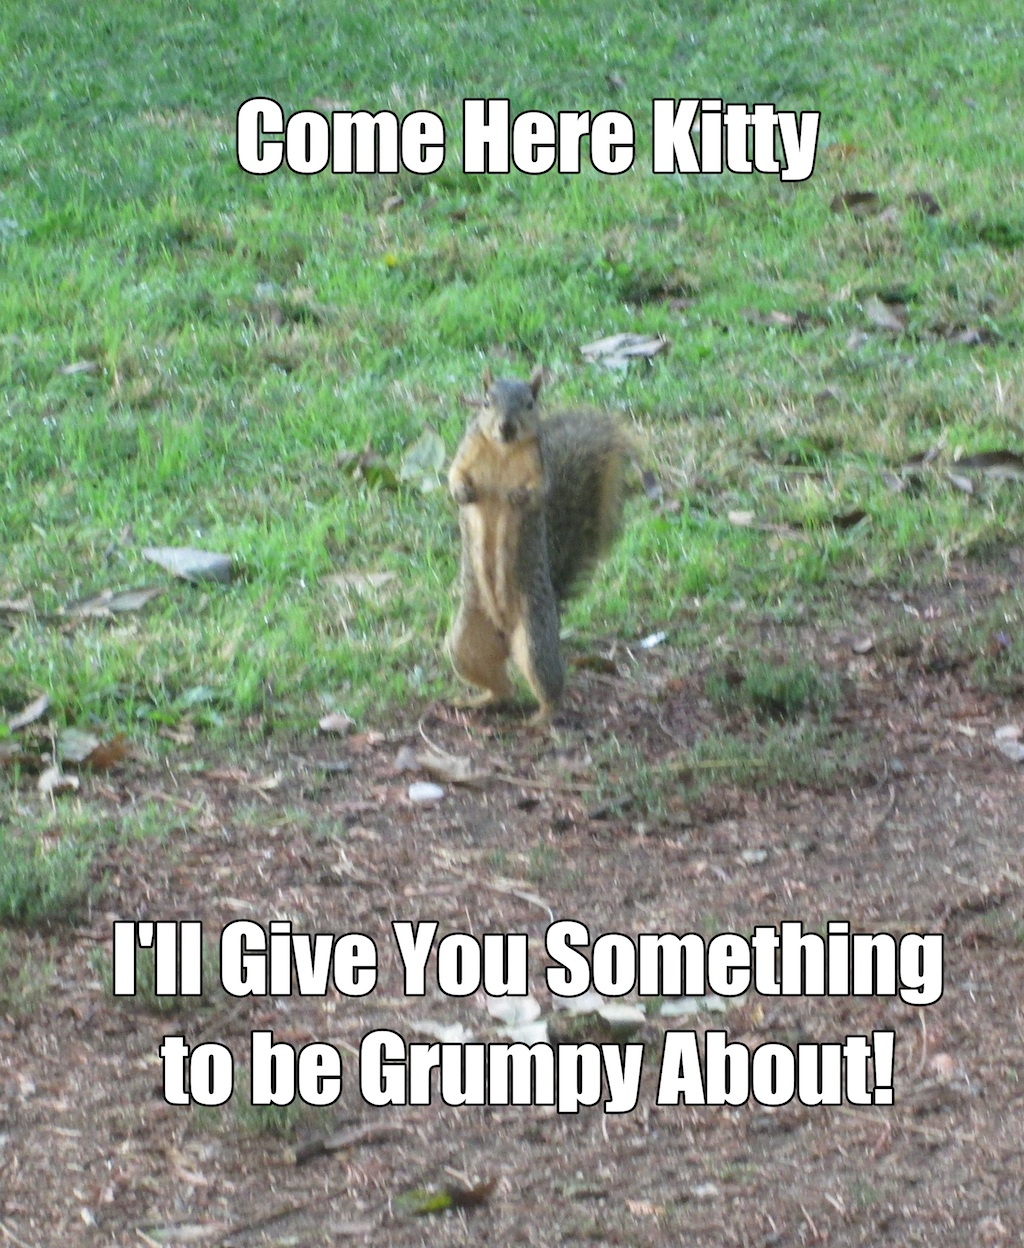 Come here kitty. I'll give you something to be grumpy about!